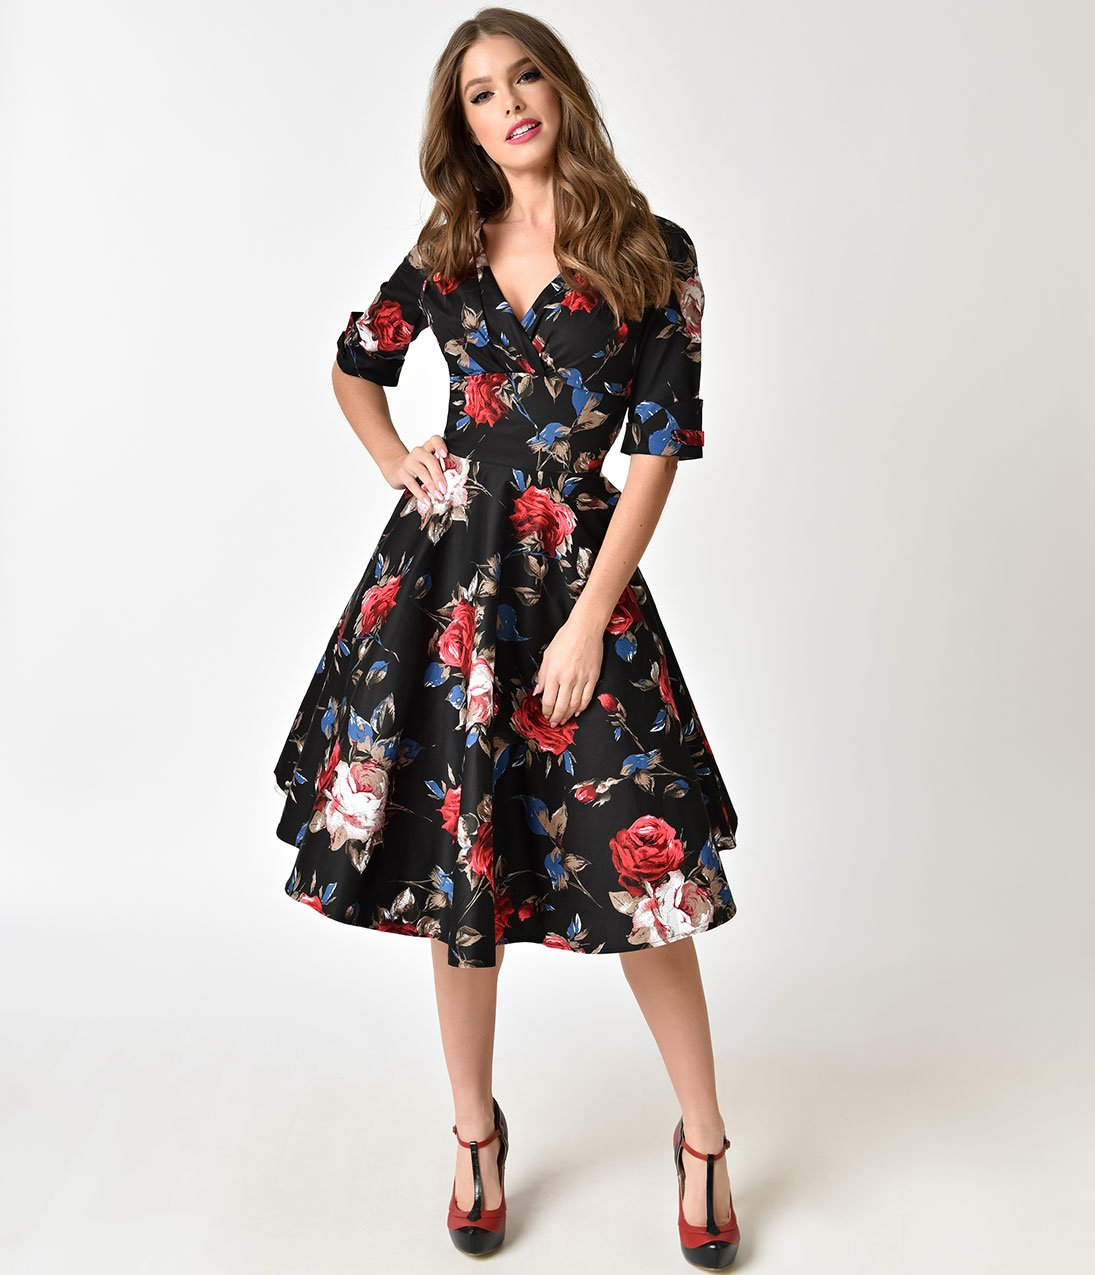 94618c174 Unique Vintage 1950s Black & Red Floral Delores Swing Dress with Sleeves